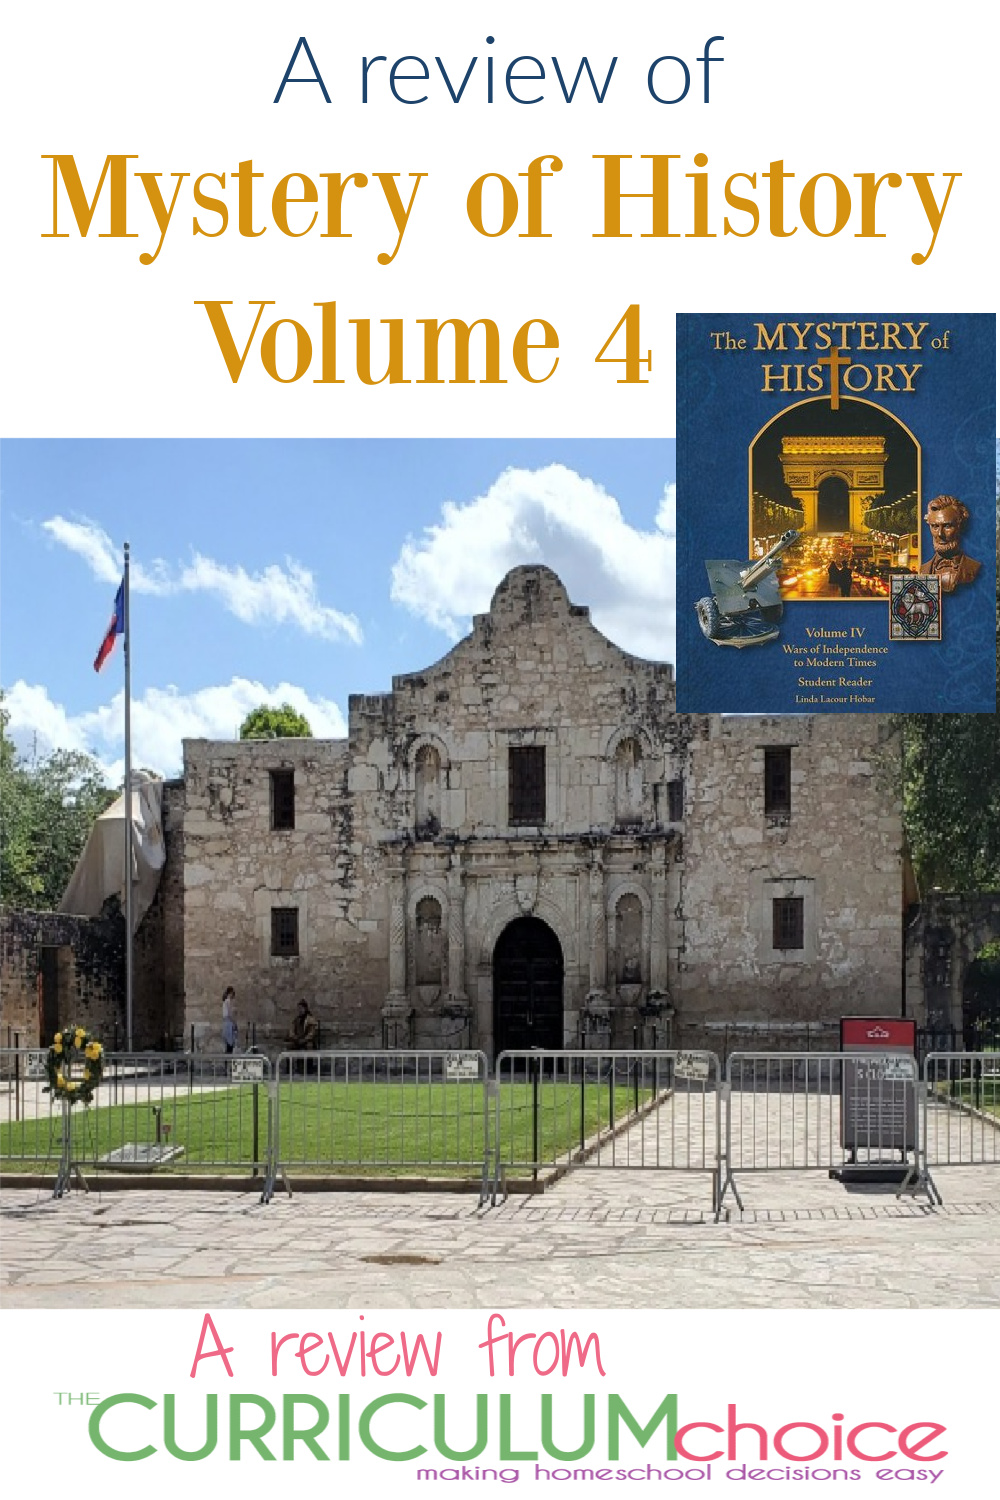 Mystery of History Volume 4 is a complete, chronological, Christian world history curriculum that spans three centuries from 1708 to 2014.